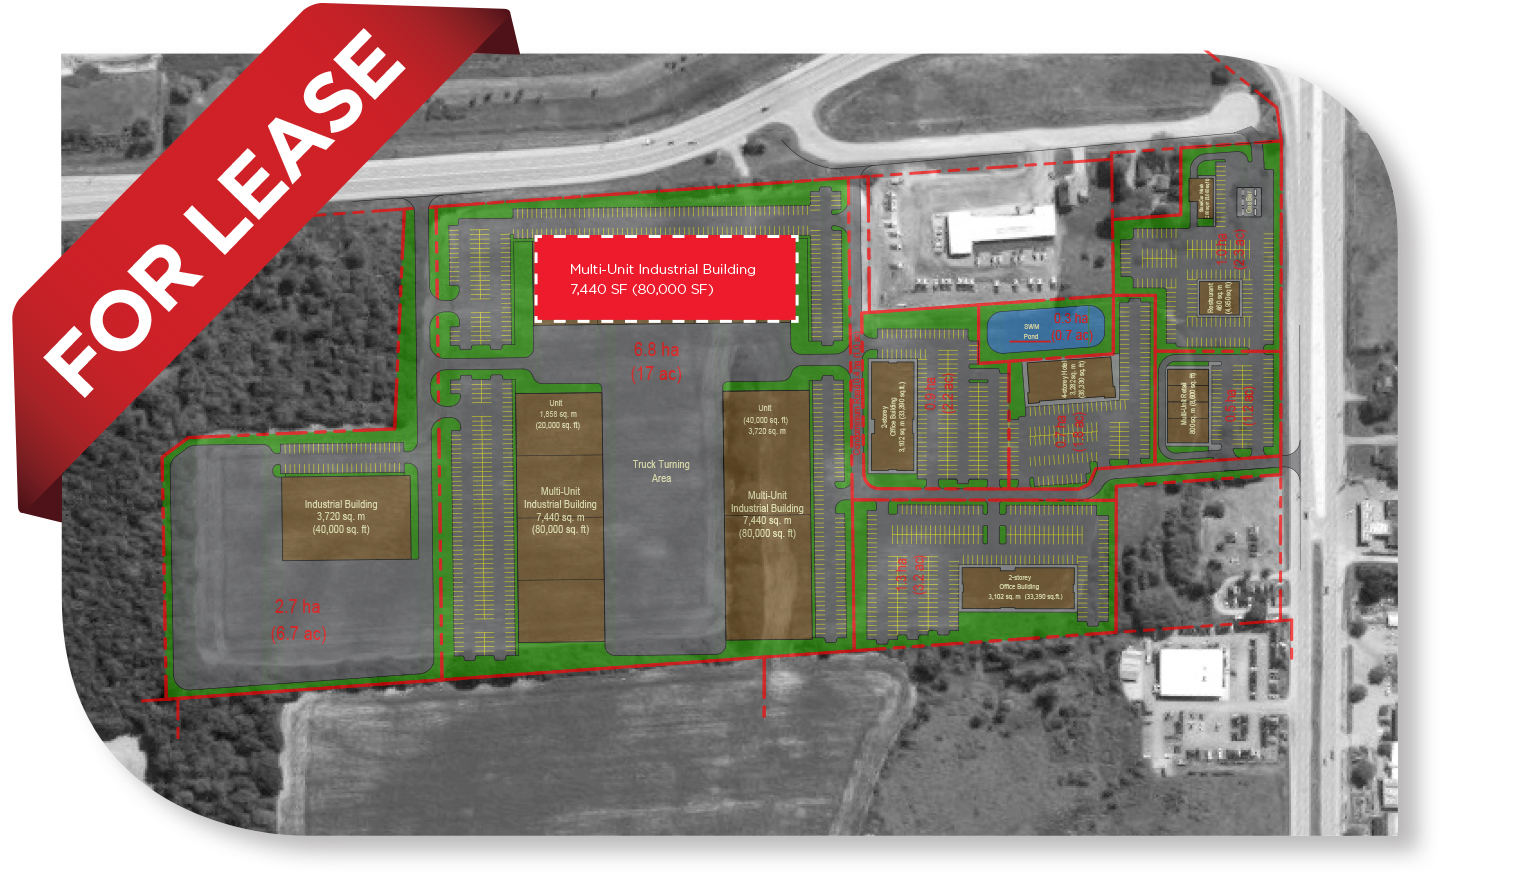 10,000 - 80,000 SF Class 'A' Spec Industrial Building